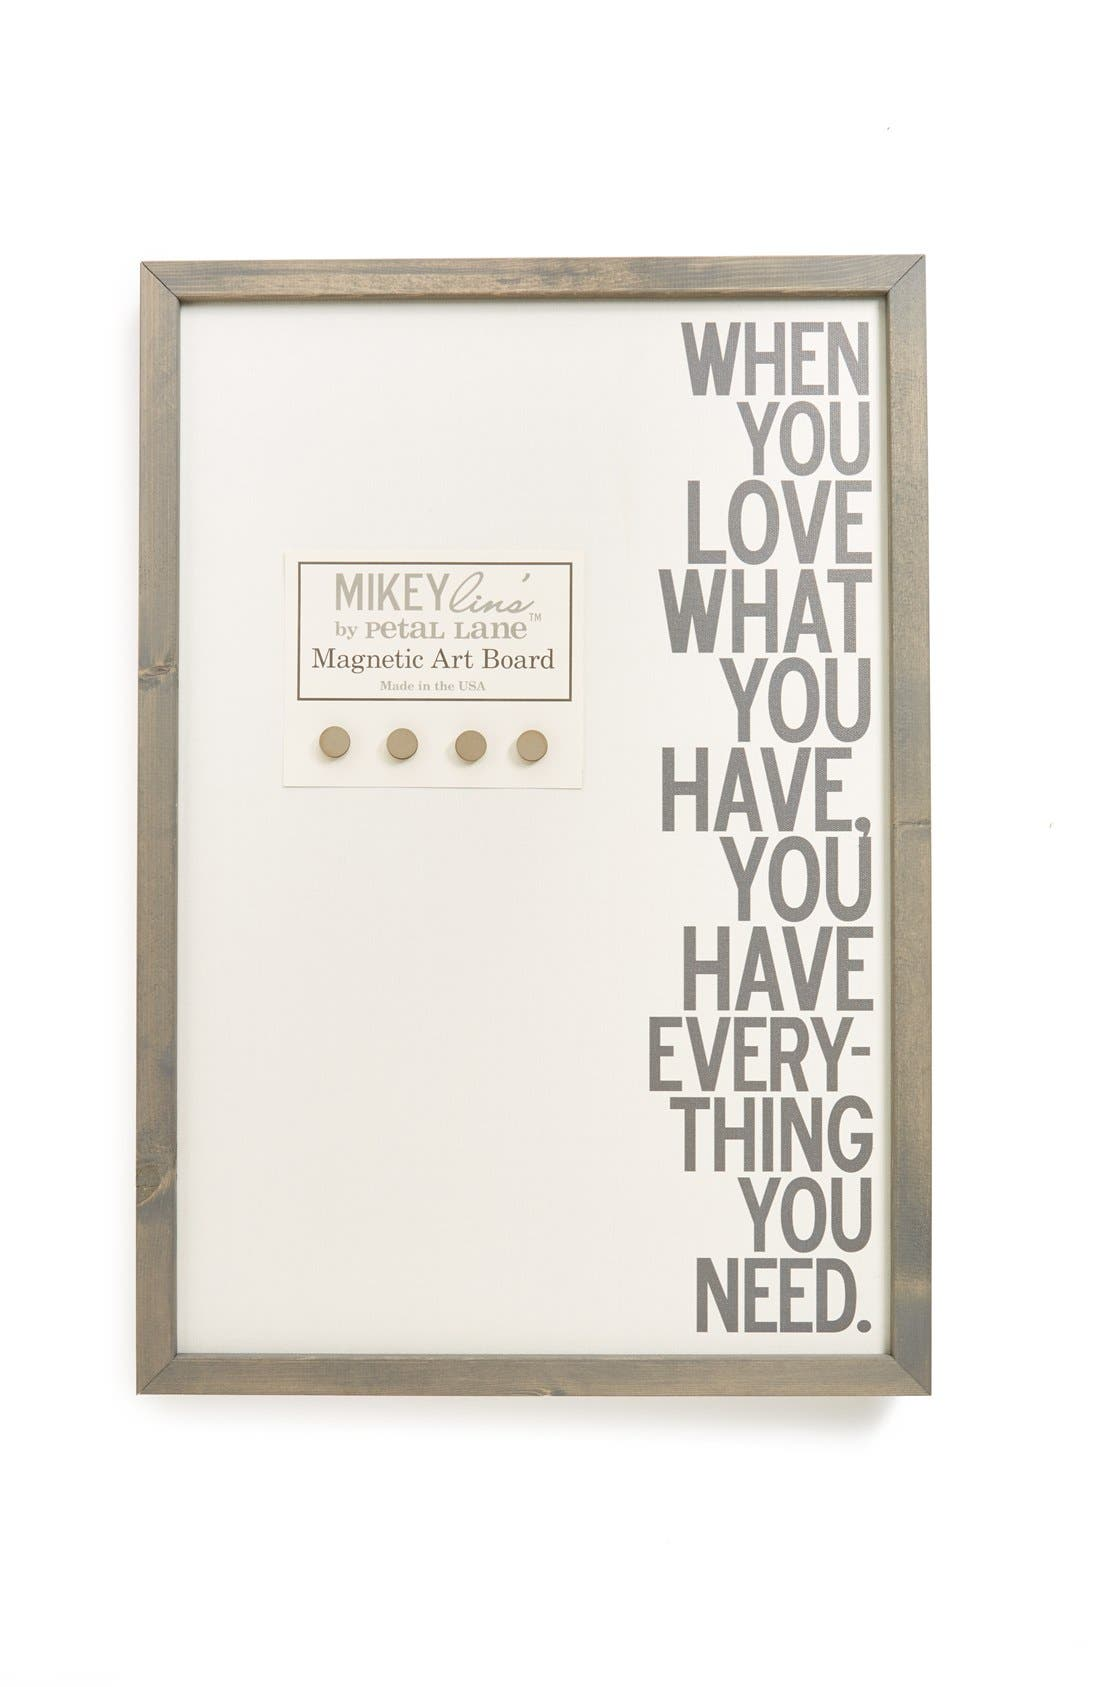 Alternate Image 1 Selected - Petal Lane 'When You Love What You Have' Magnet Board